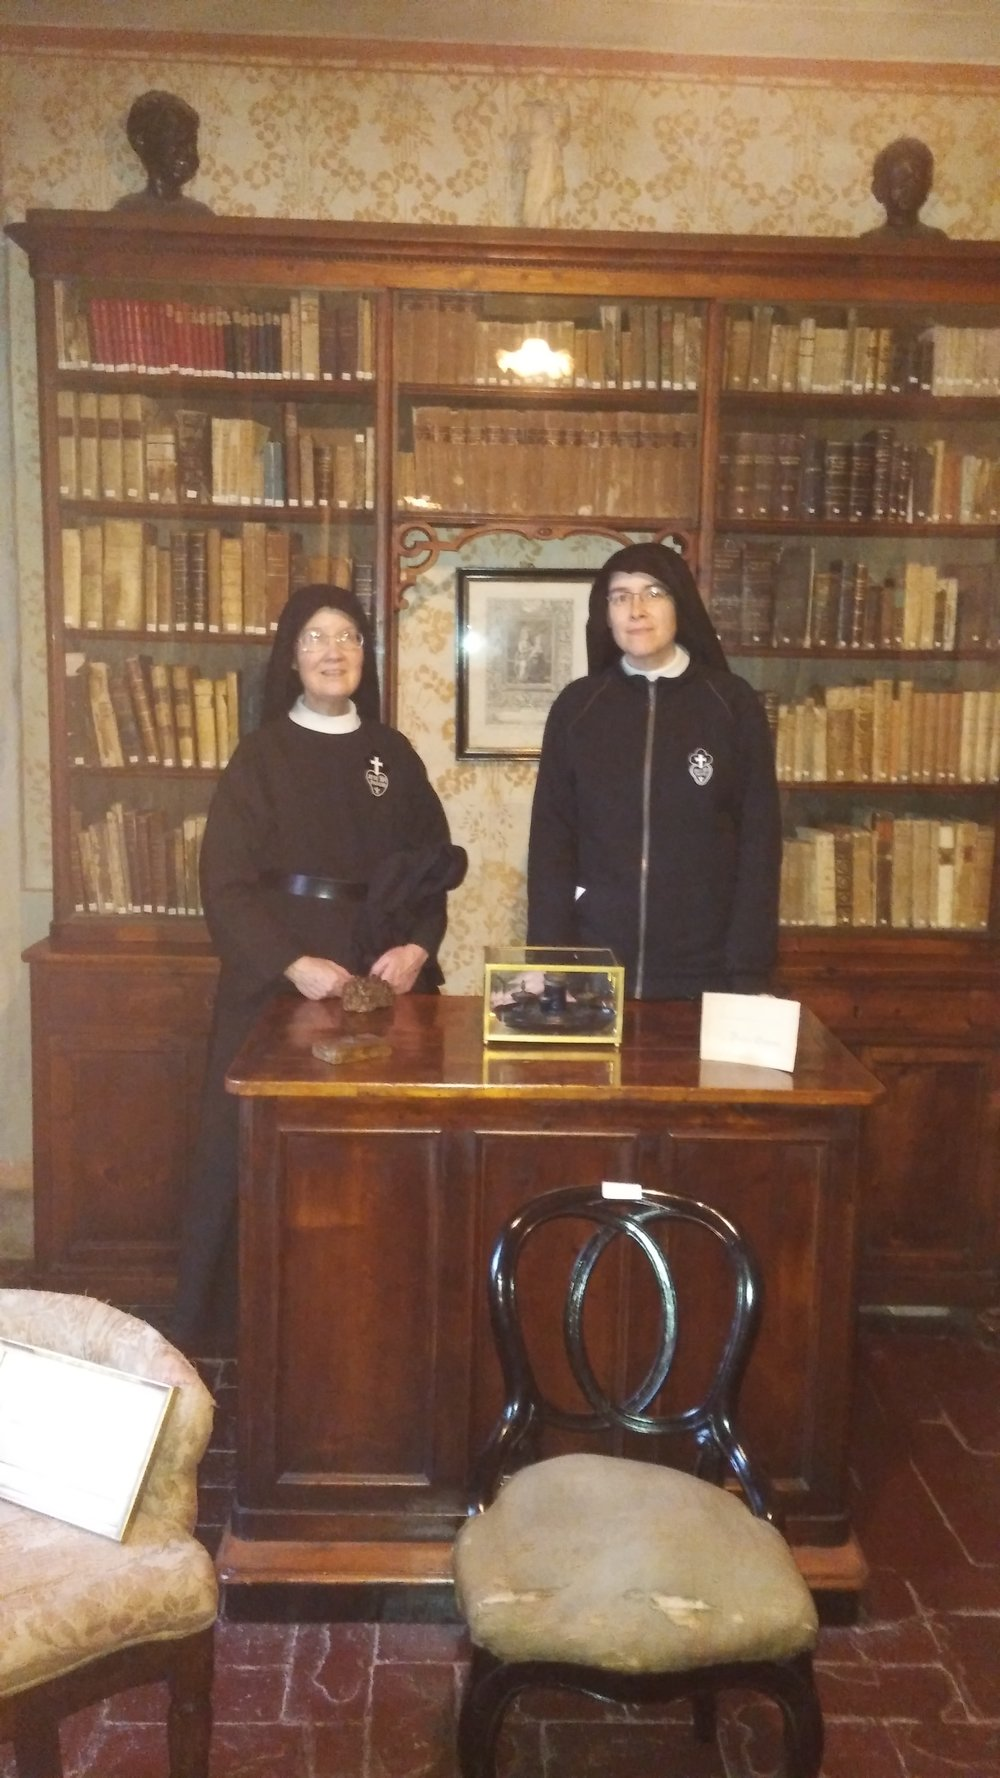 Sr. Mary Veronica and Mother John Mary visited the Giannini house in Lucca, where St. Gemma lived for several years before her death.  This is the desk at which she would write letters.